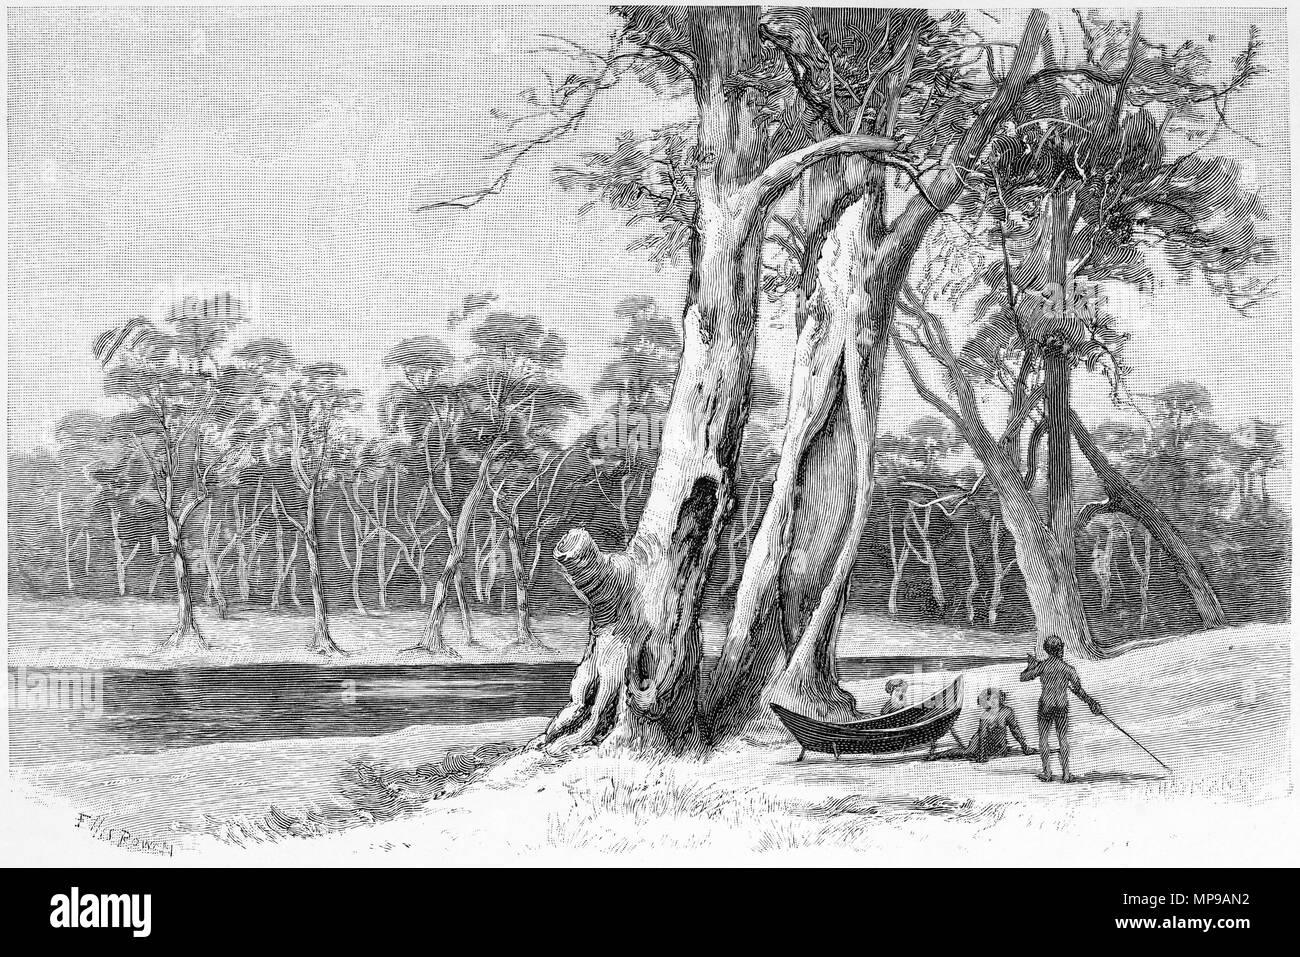 Engraving of Aborigines making a bark canoe, Australia. From the Picturesque Atlas of Australasia Vol 3, 1886 - Stock Image